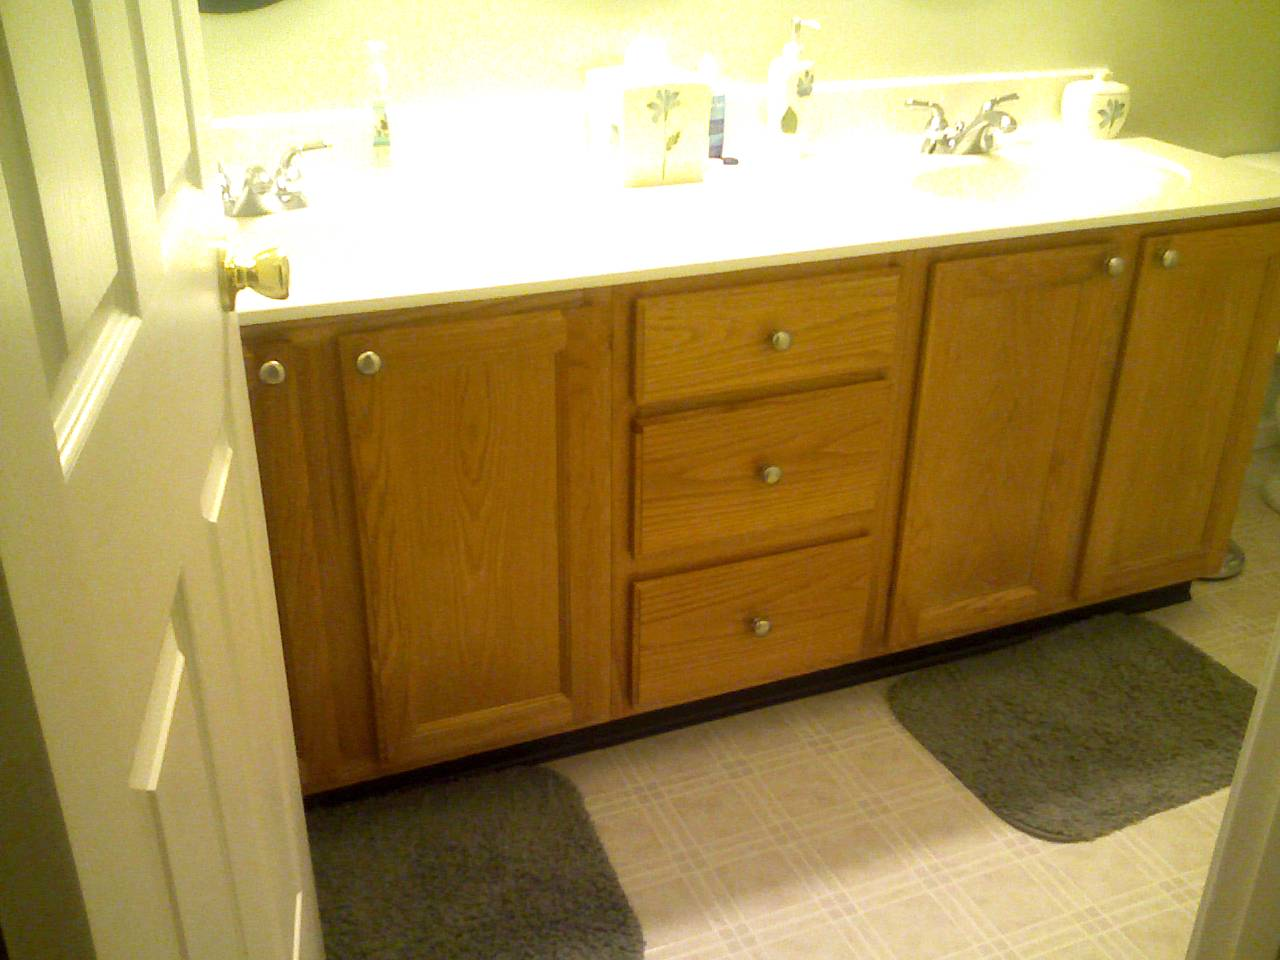 new laminated counter tops bathroom cabinet refacing before and after